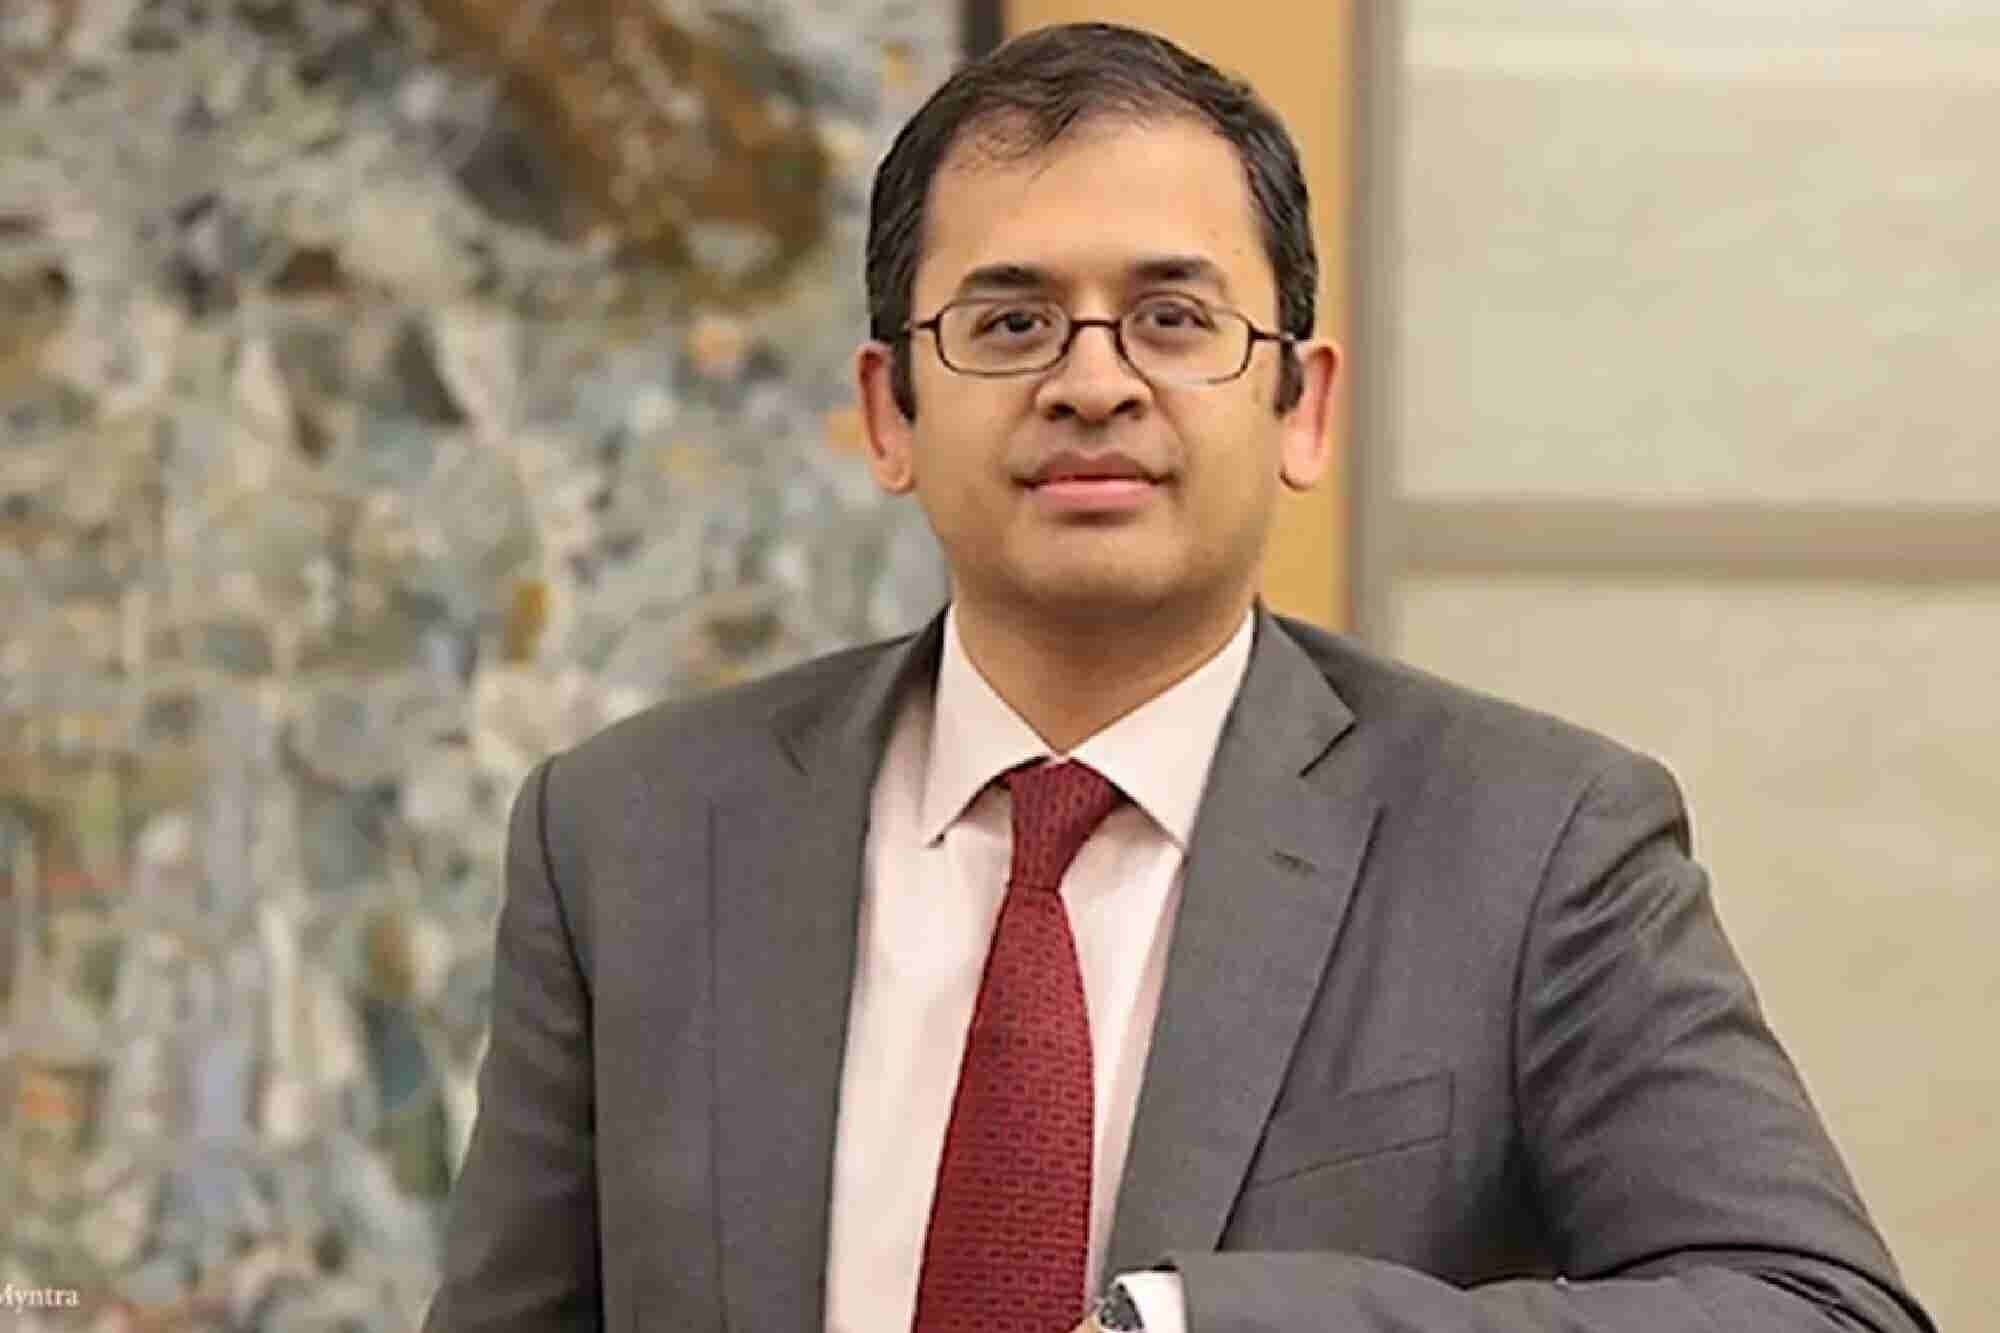 Ananth Narayanan Stays as Myntra CEO & Infosys Names the Interim CFO: 4 Things to Know Today